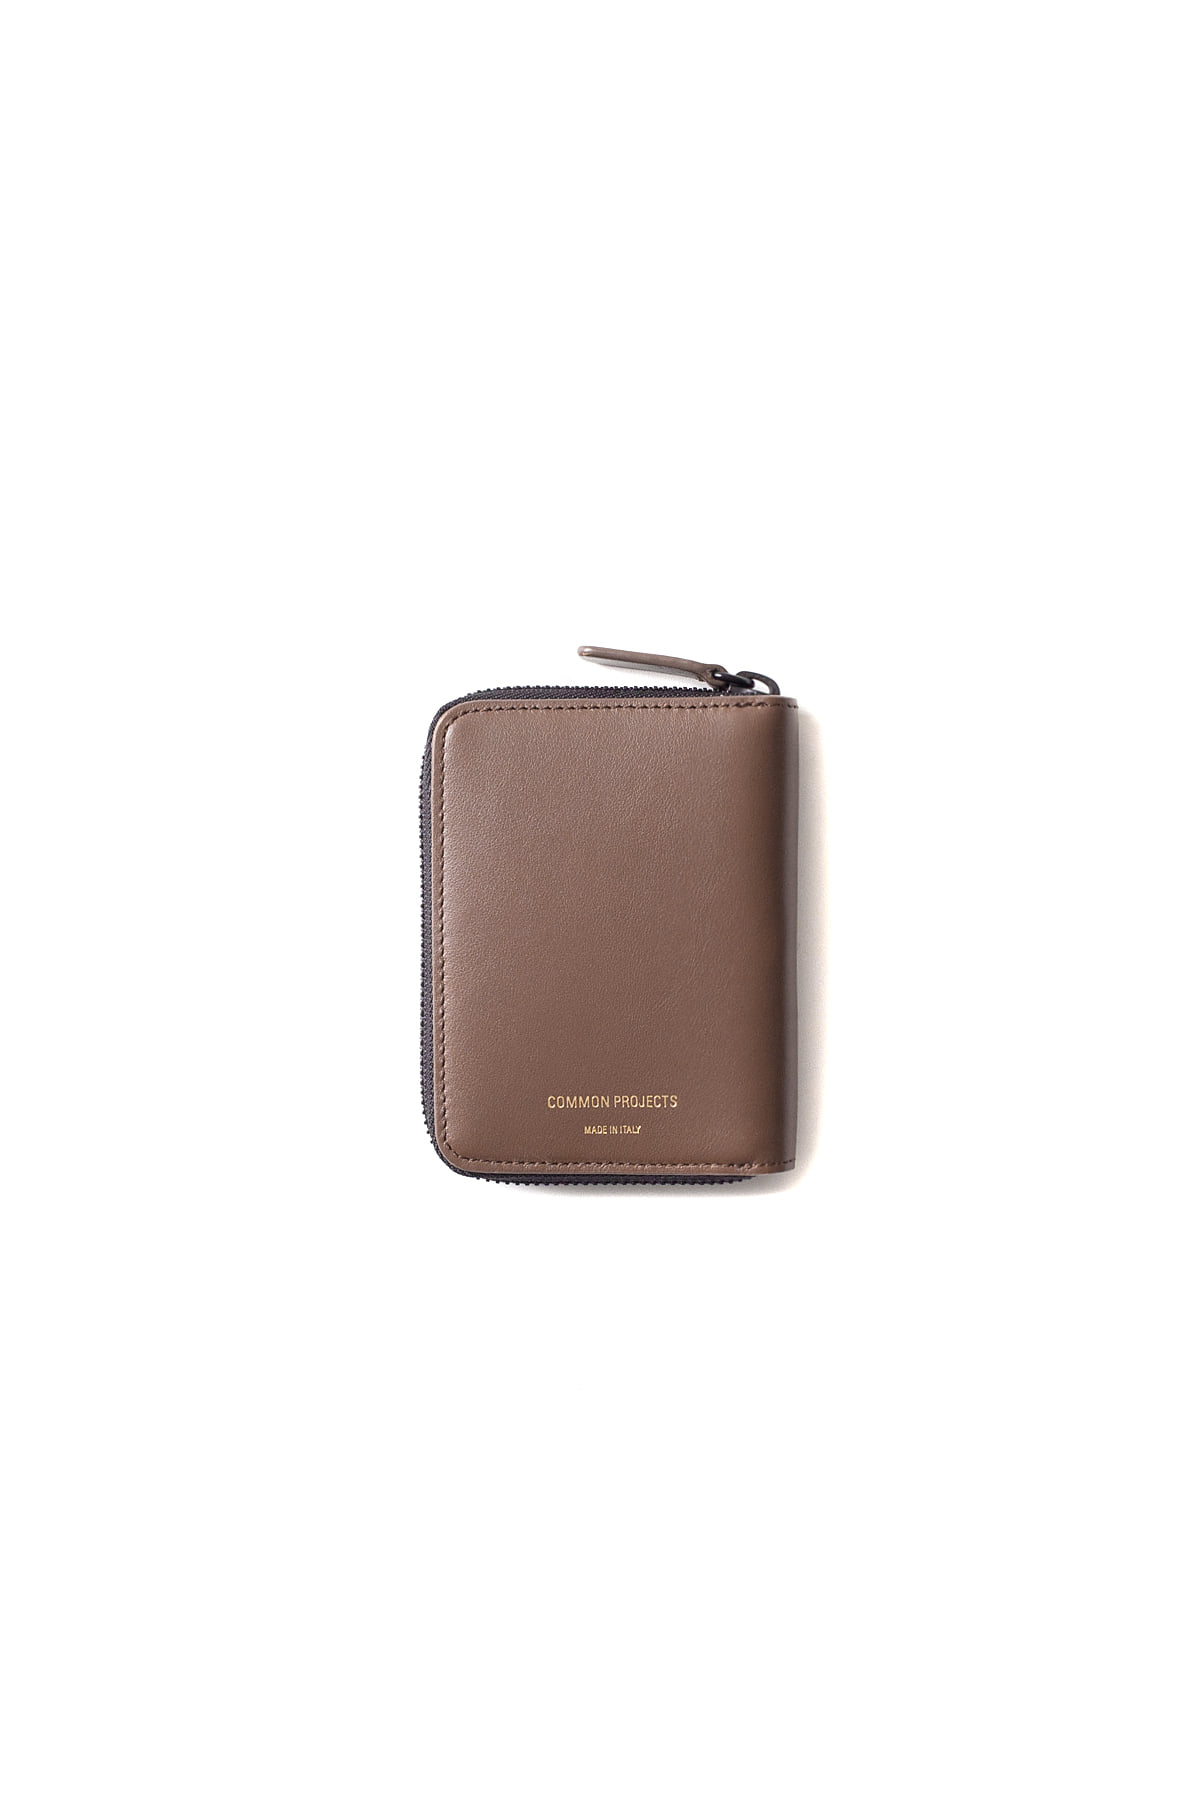 Common Projects : Zip Coin Case (Brown)